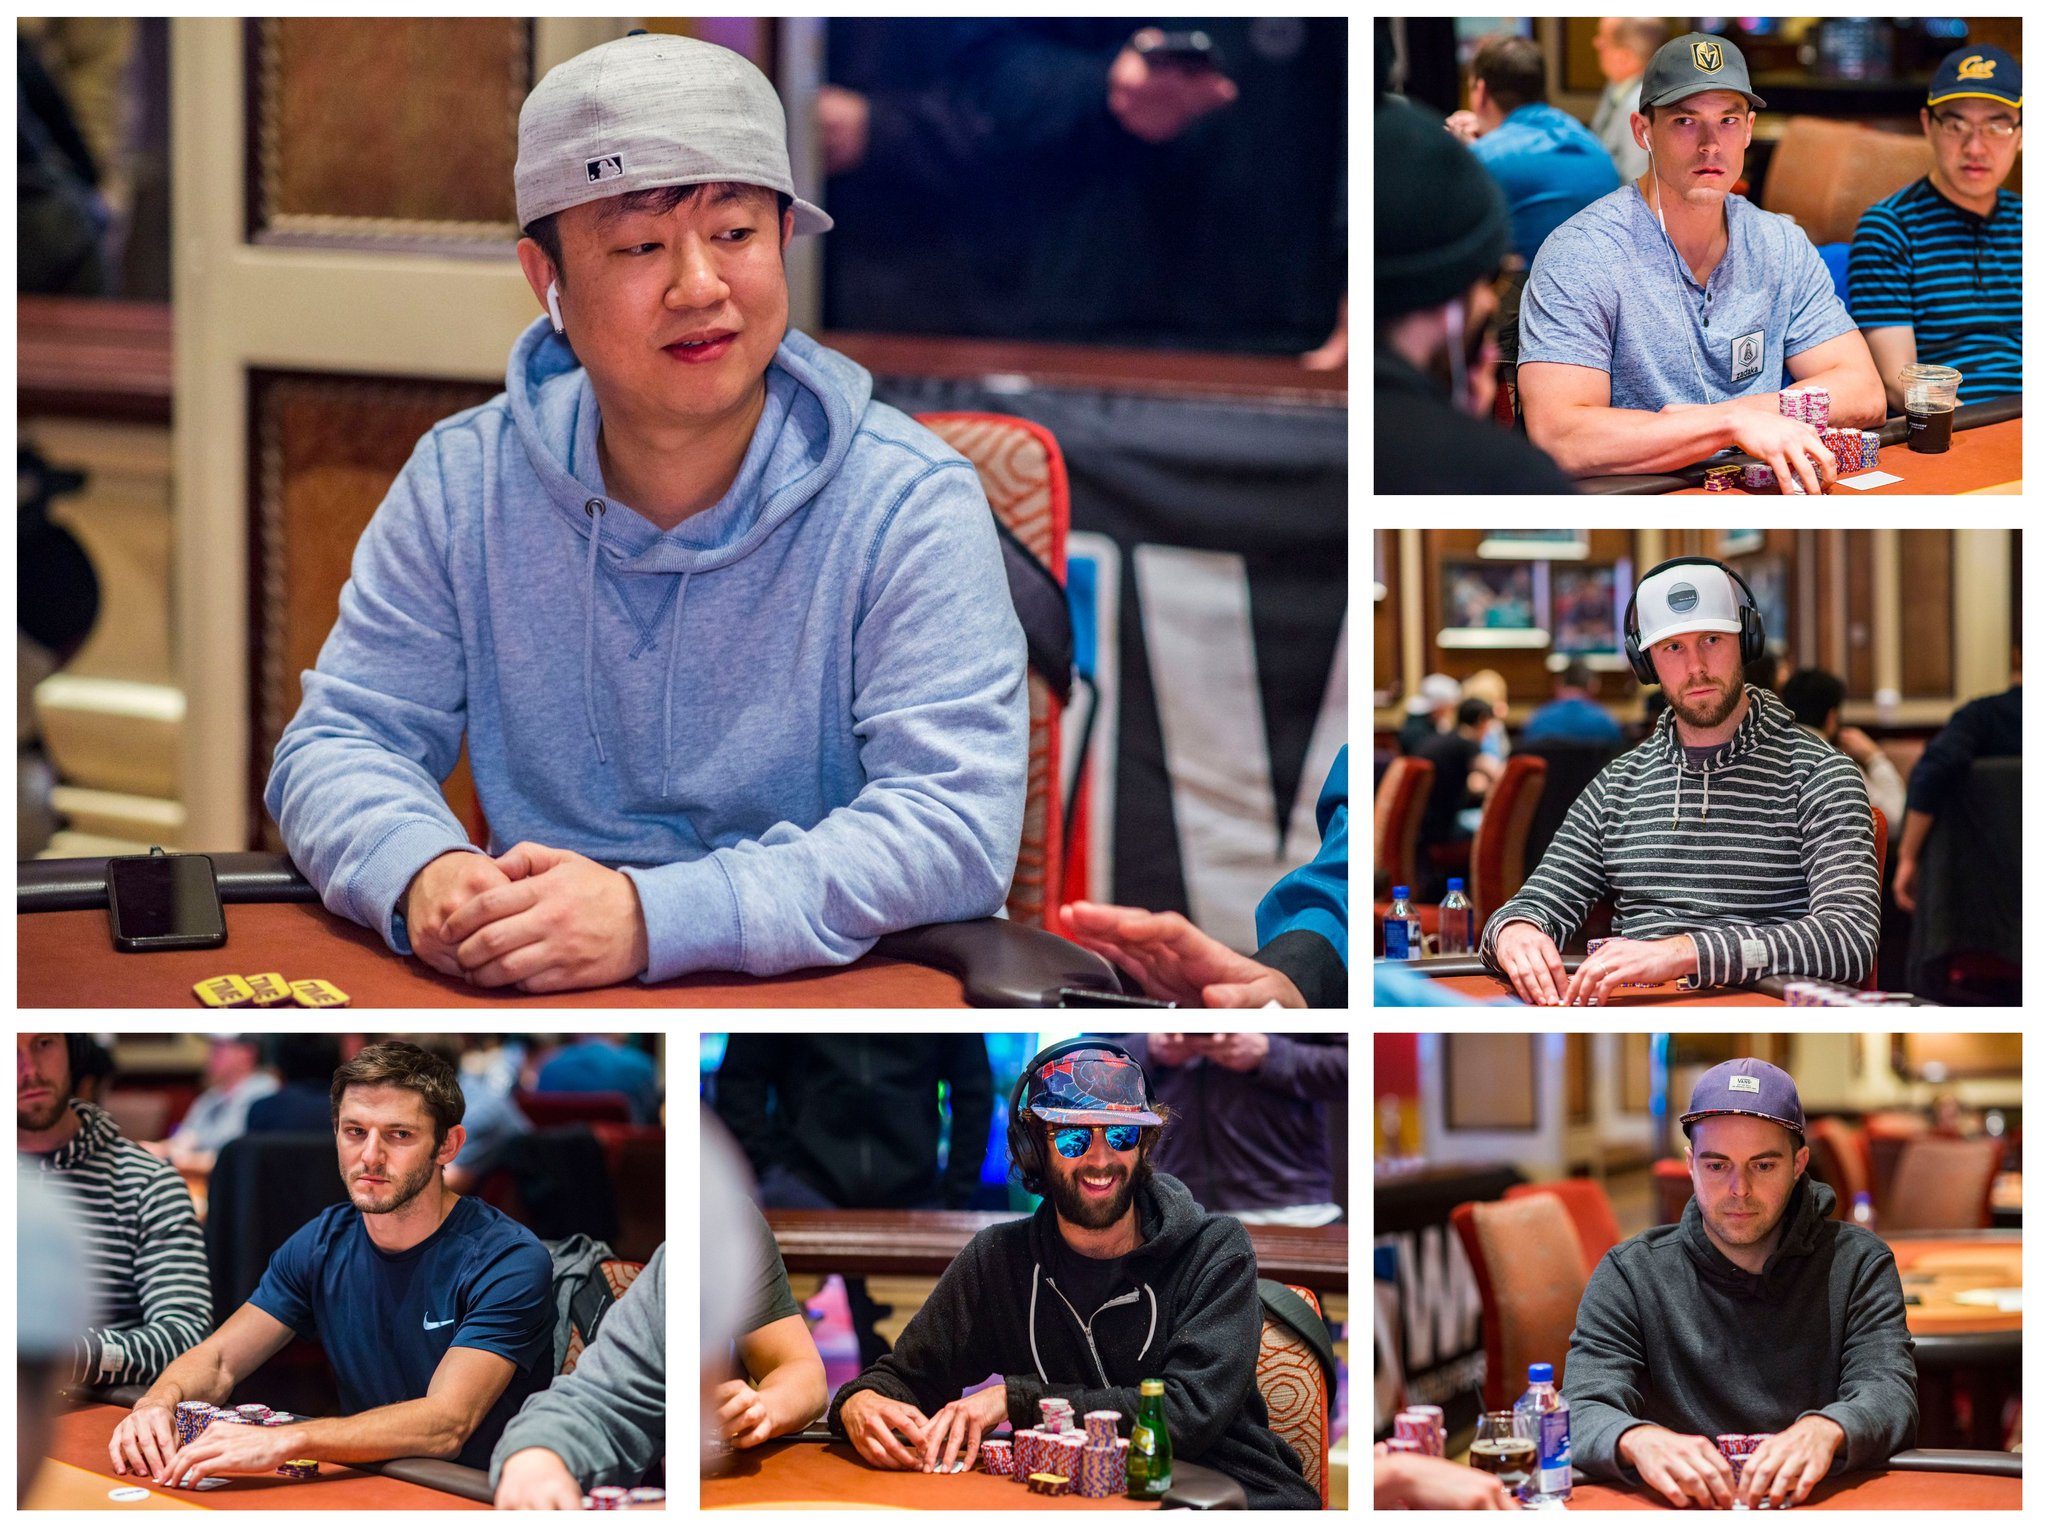 World Poker Tour On Twitter Meet The Wpt5d Final Tablists With Two Wpt A And More Looking To Win 1 69 Million At 3 00 Pm Pt On Pokergo Thecupawaits Https T Co E31t4ighbh Https T Co 9nxu2wizgn